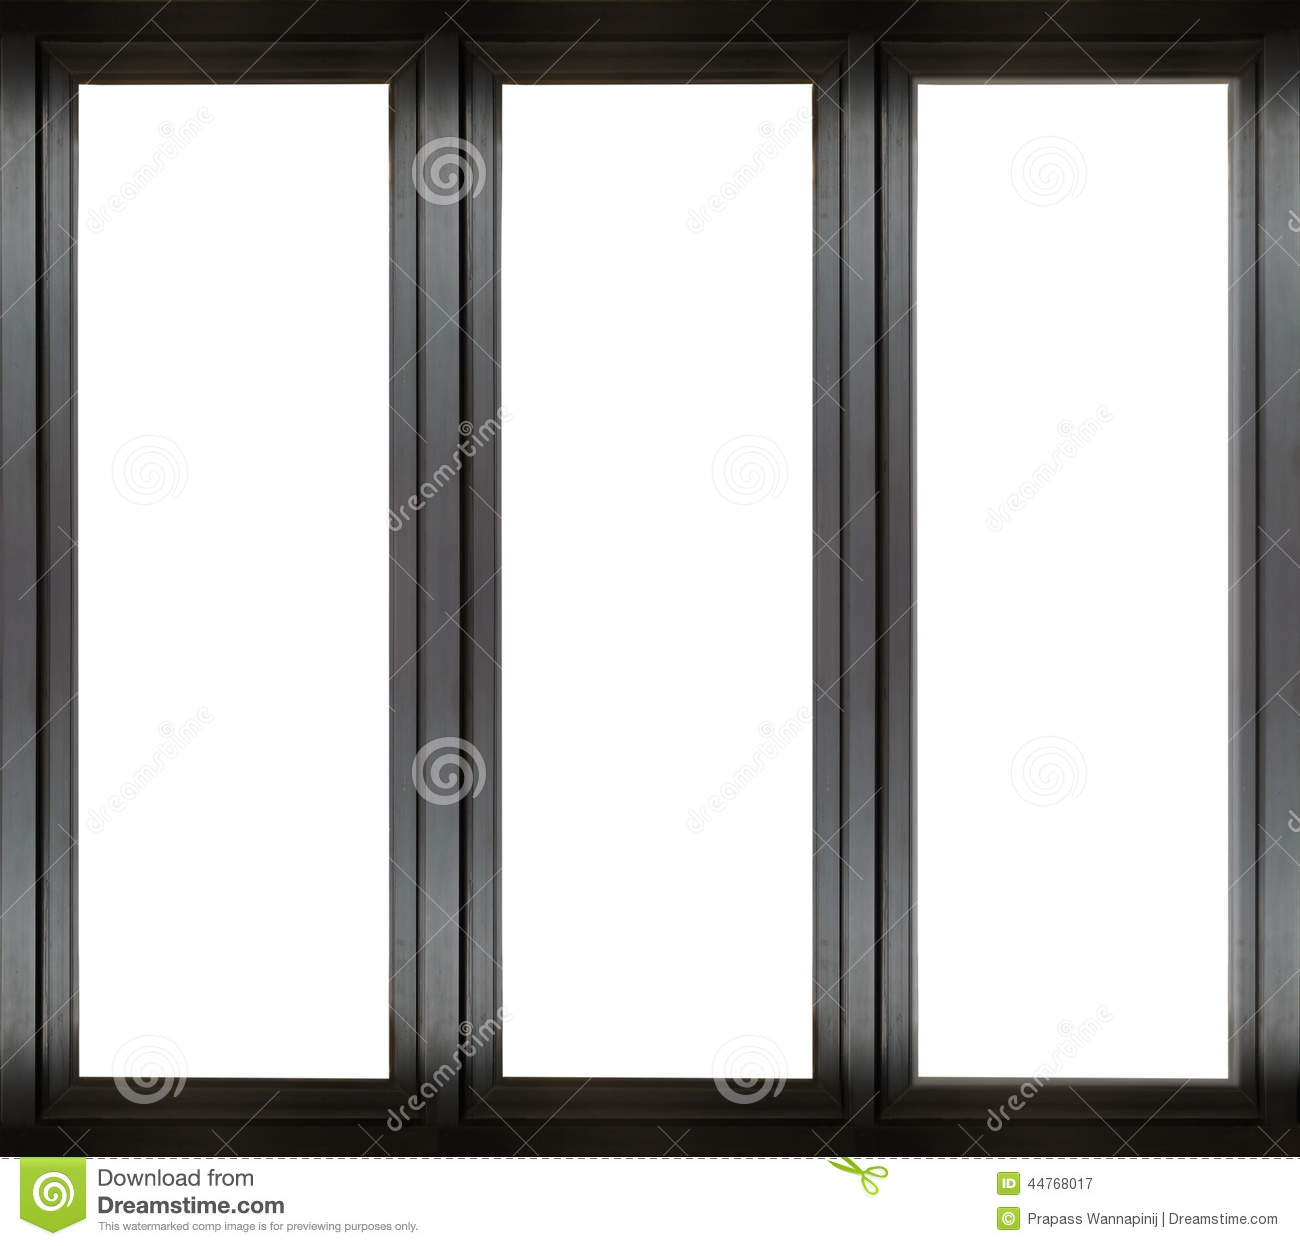 Black metal window frame stock image. Image of close - 44768017